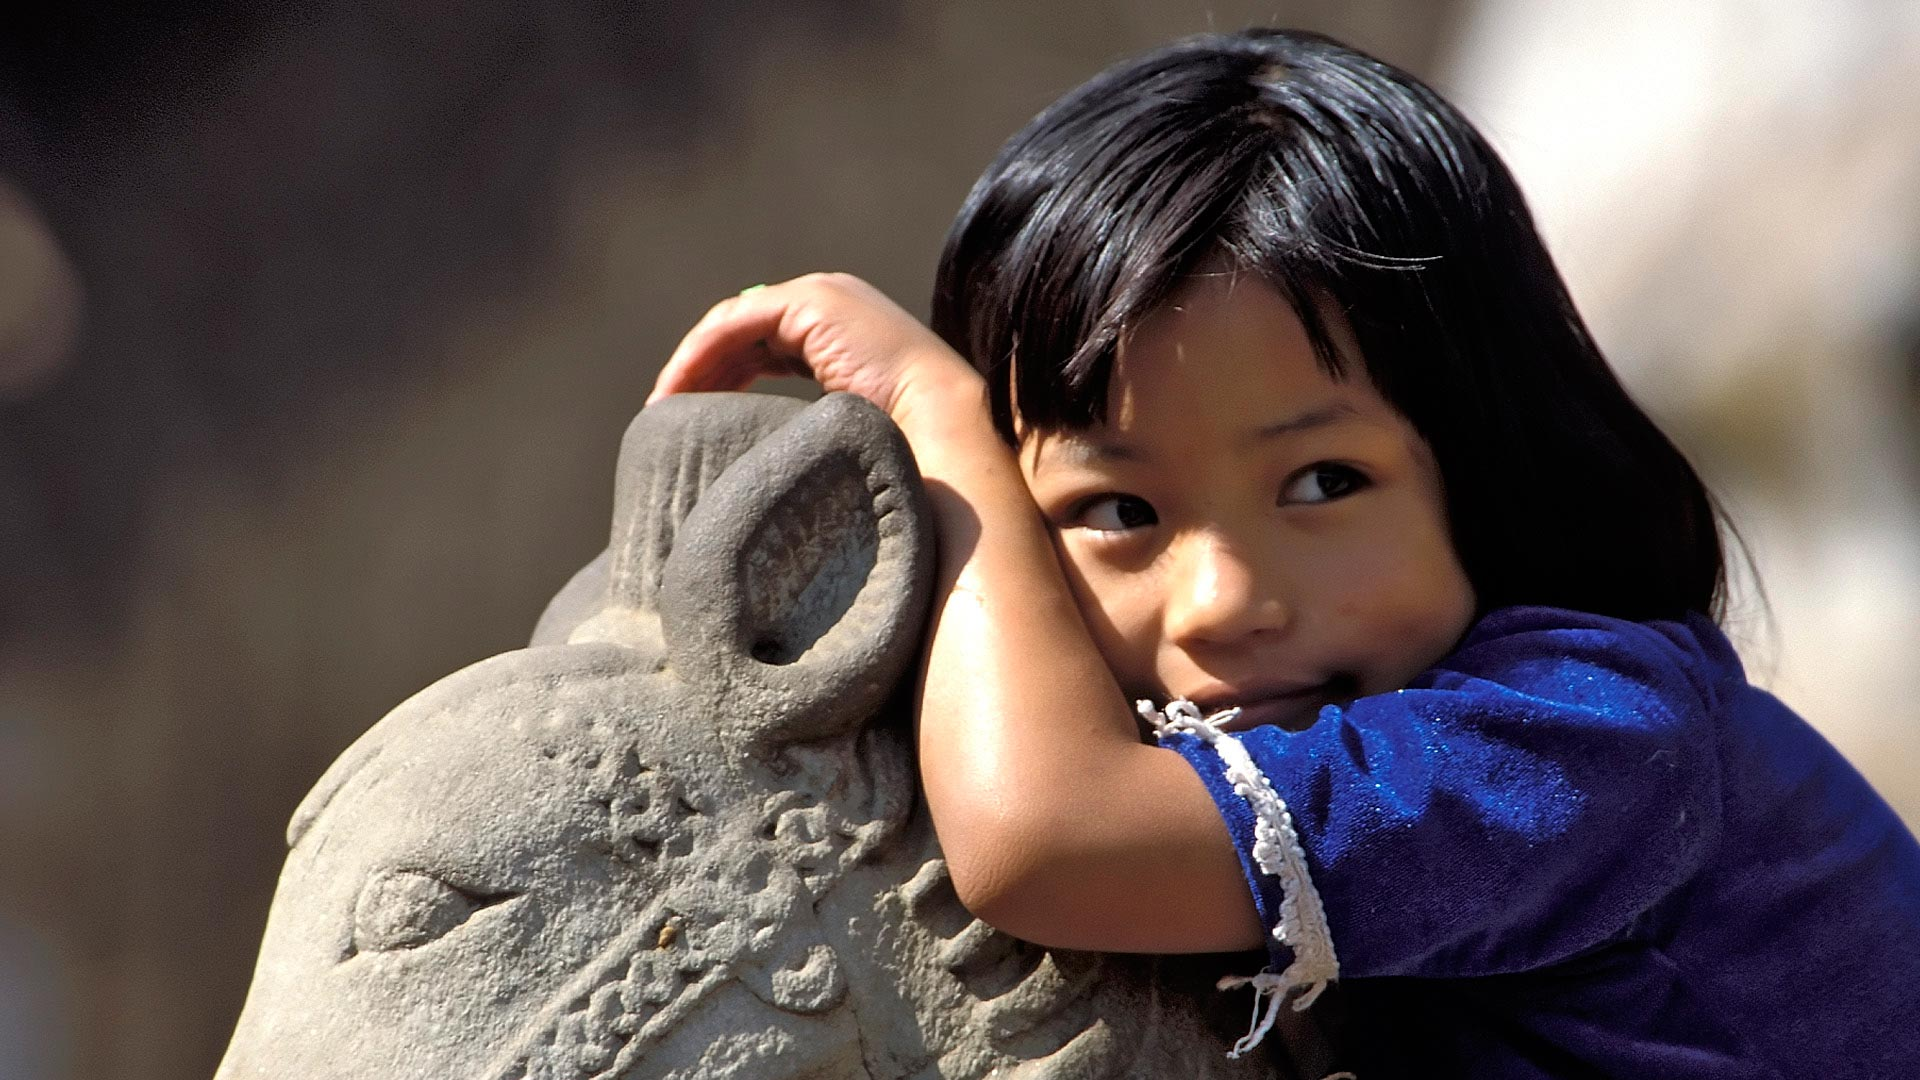 Girl sitting on a horse statue, Bhaktapur, Kathmandu Valley, Madhyamanchal (Central Region), Nepal